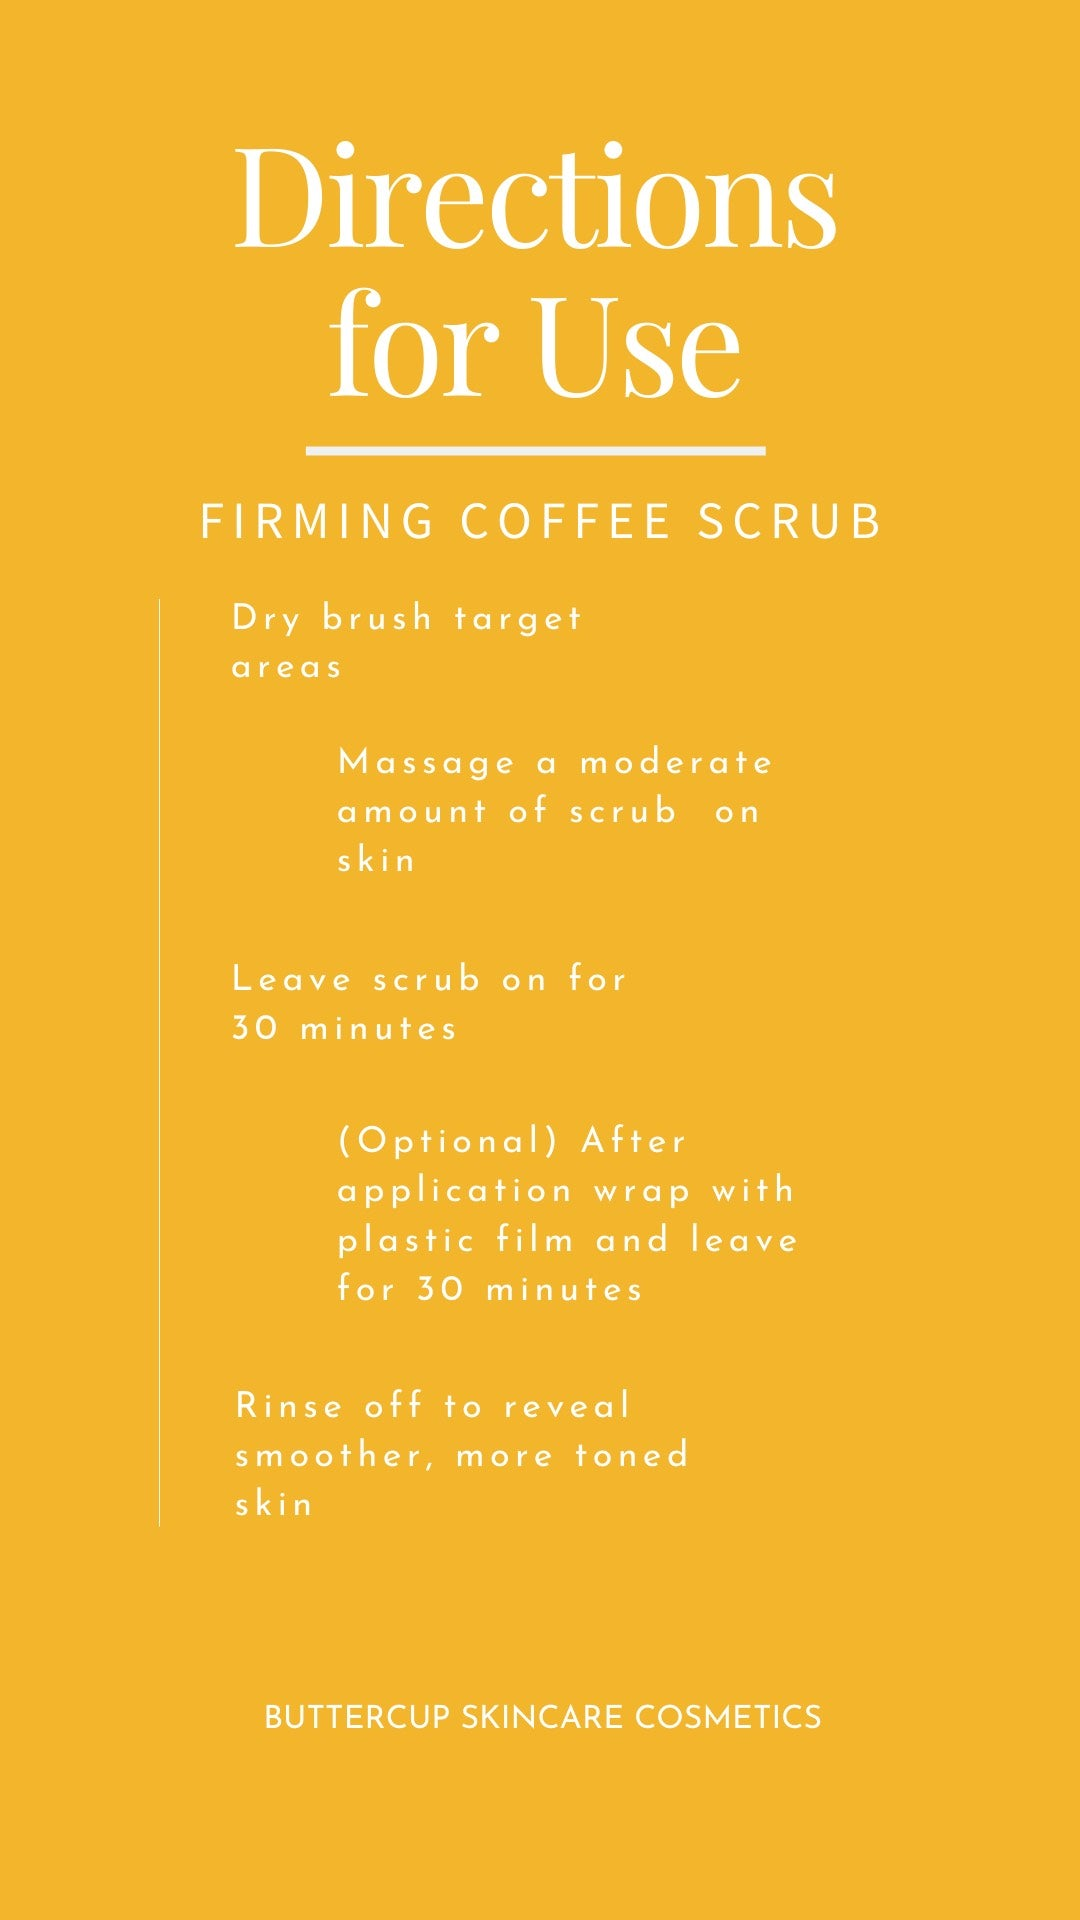 Firming Coffee Scrub with Manuka Honey and Rosemary for cellulite - 8 oz